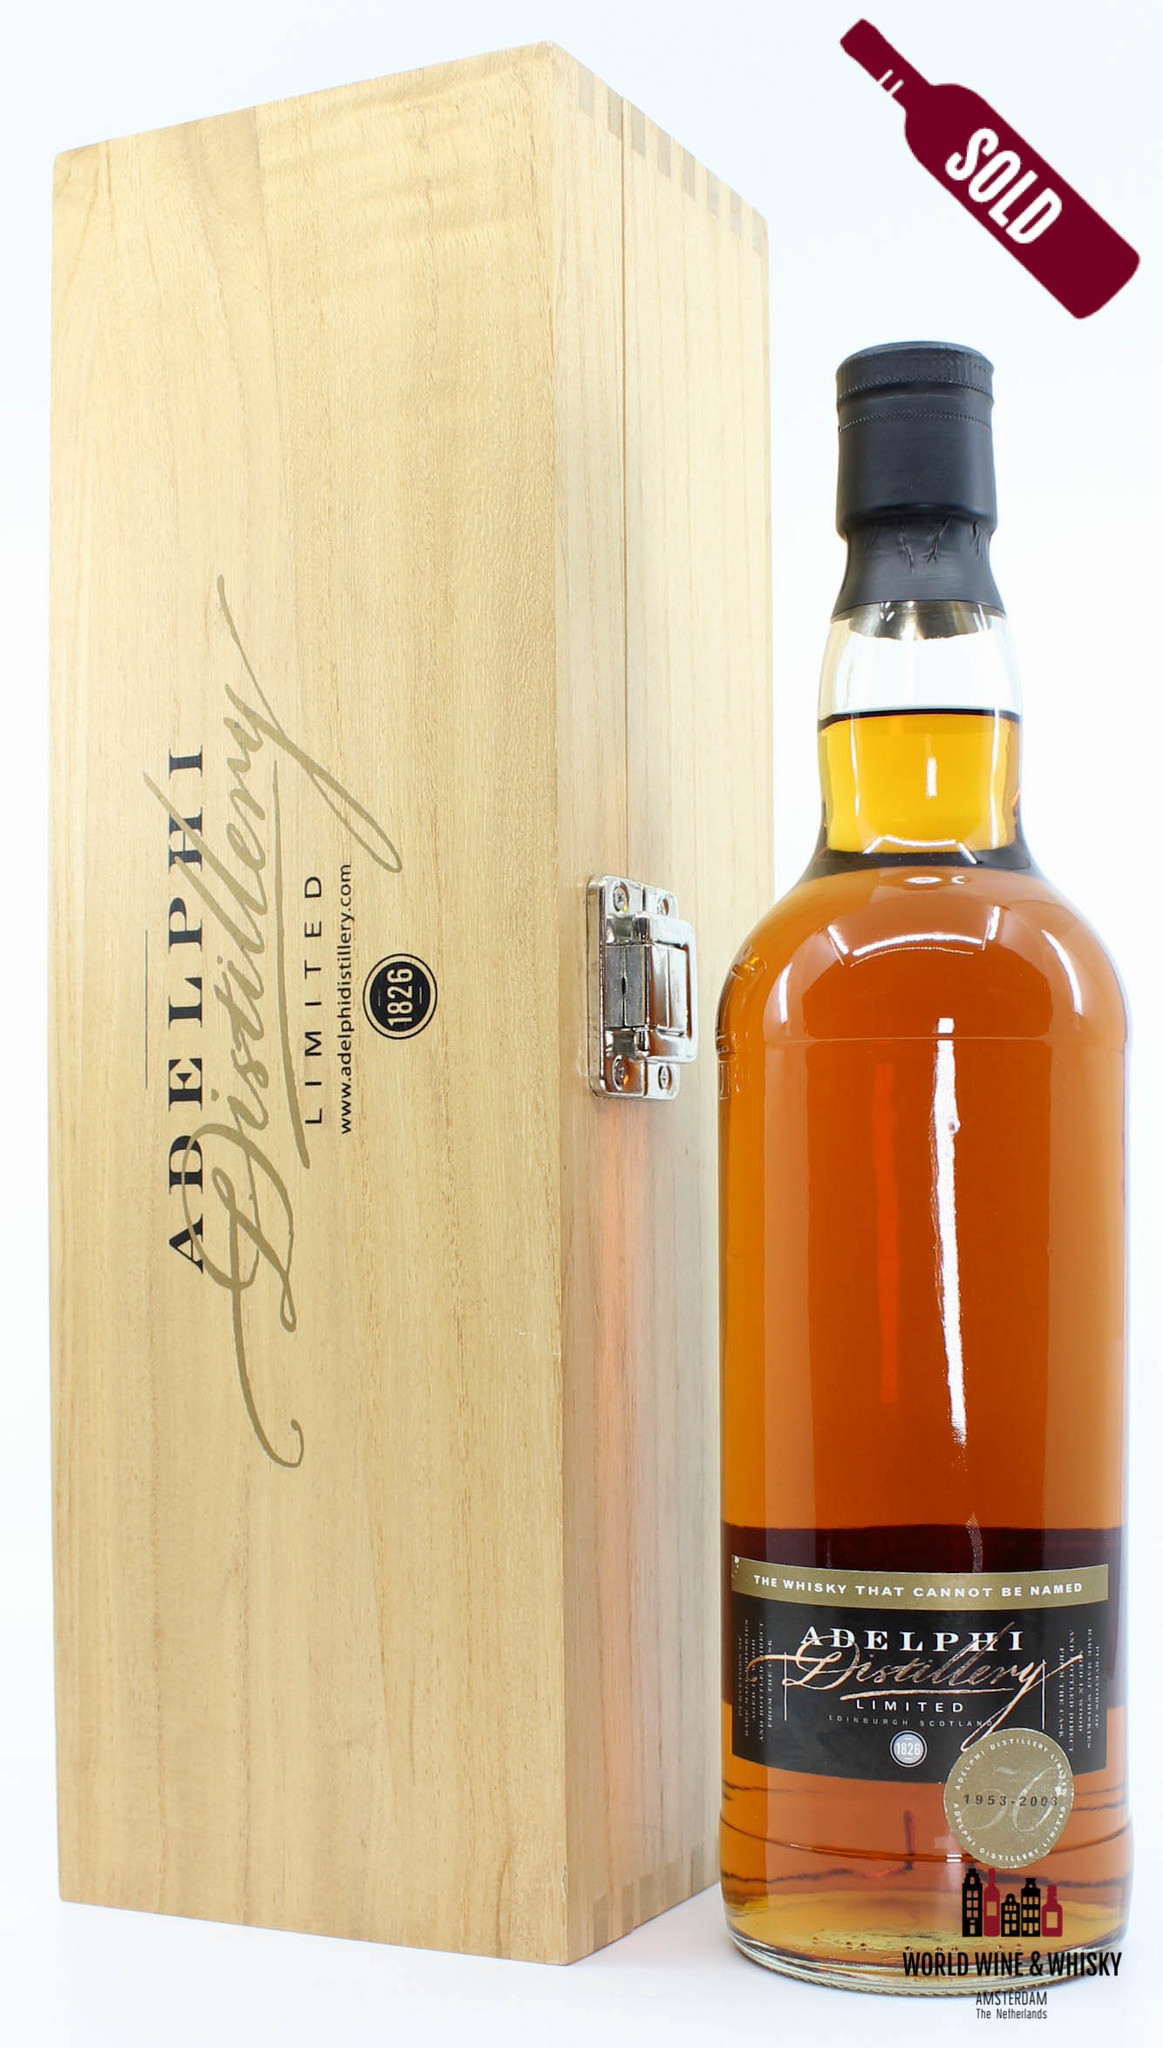 Adelphi  Adelphi 50 Years Old 1953 2003 The whisky that cannot be named - Cask 1668 54.3%